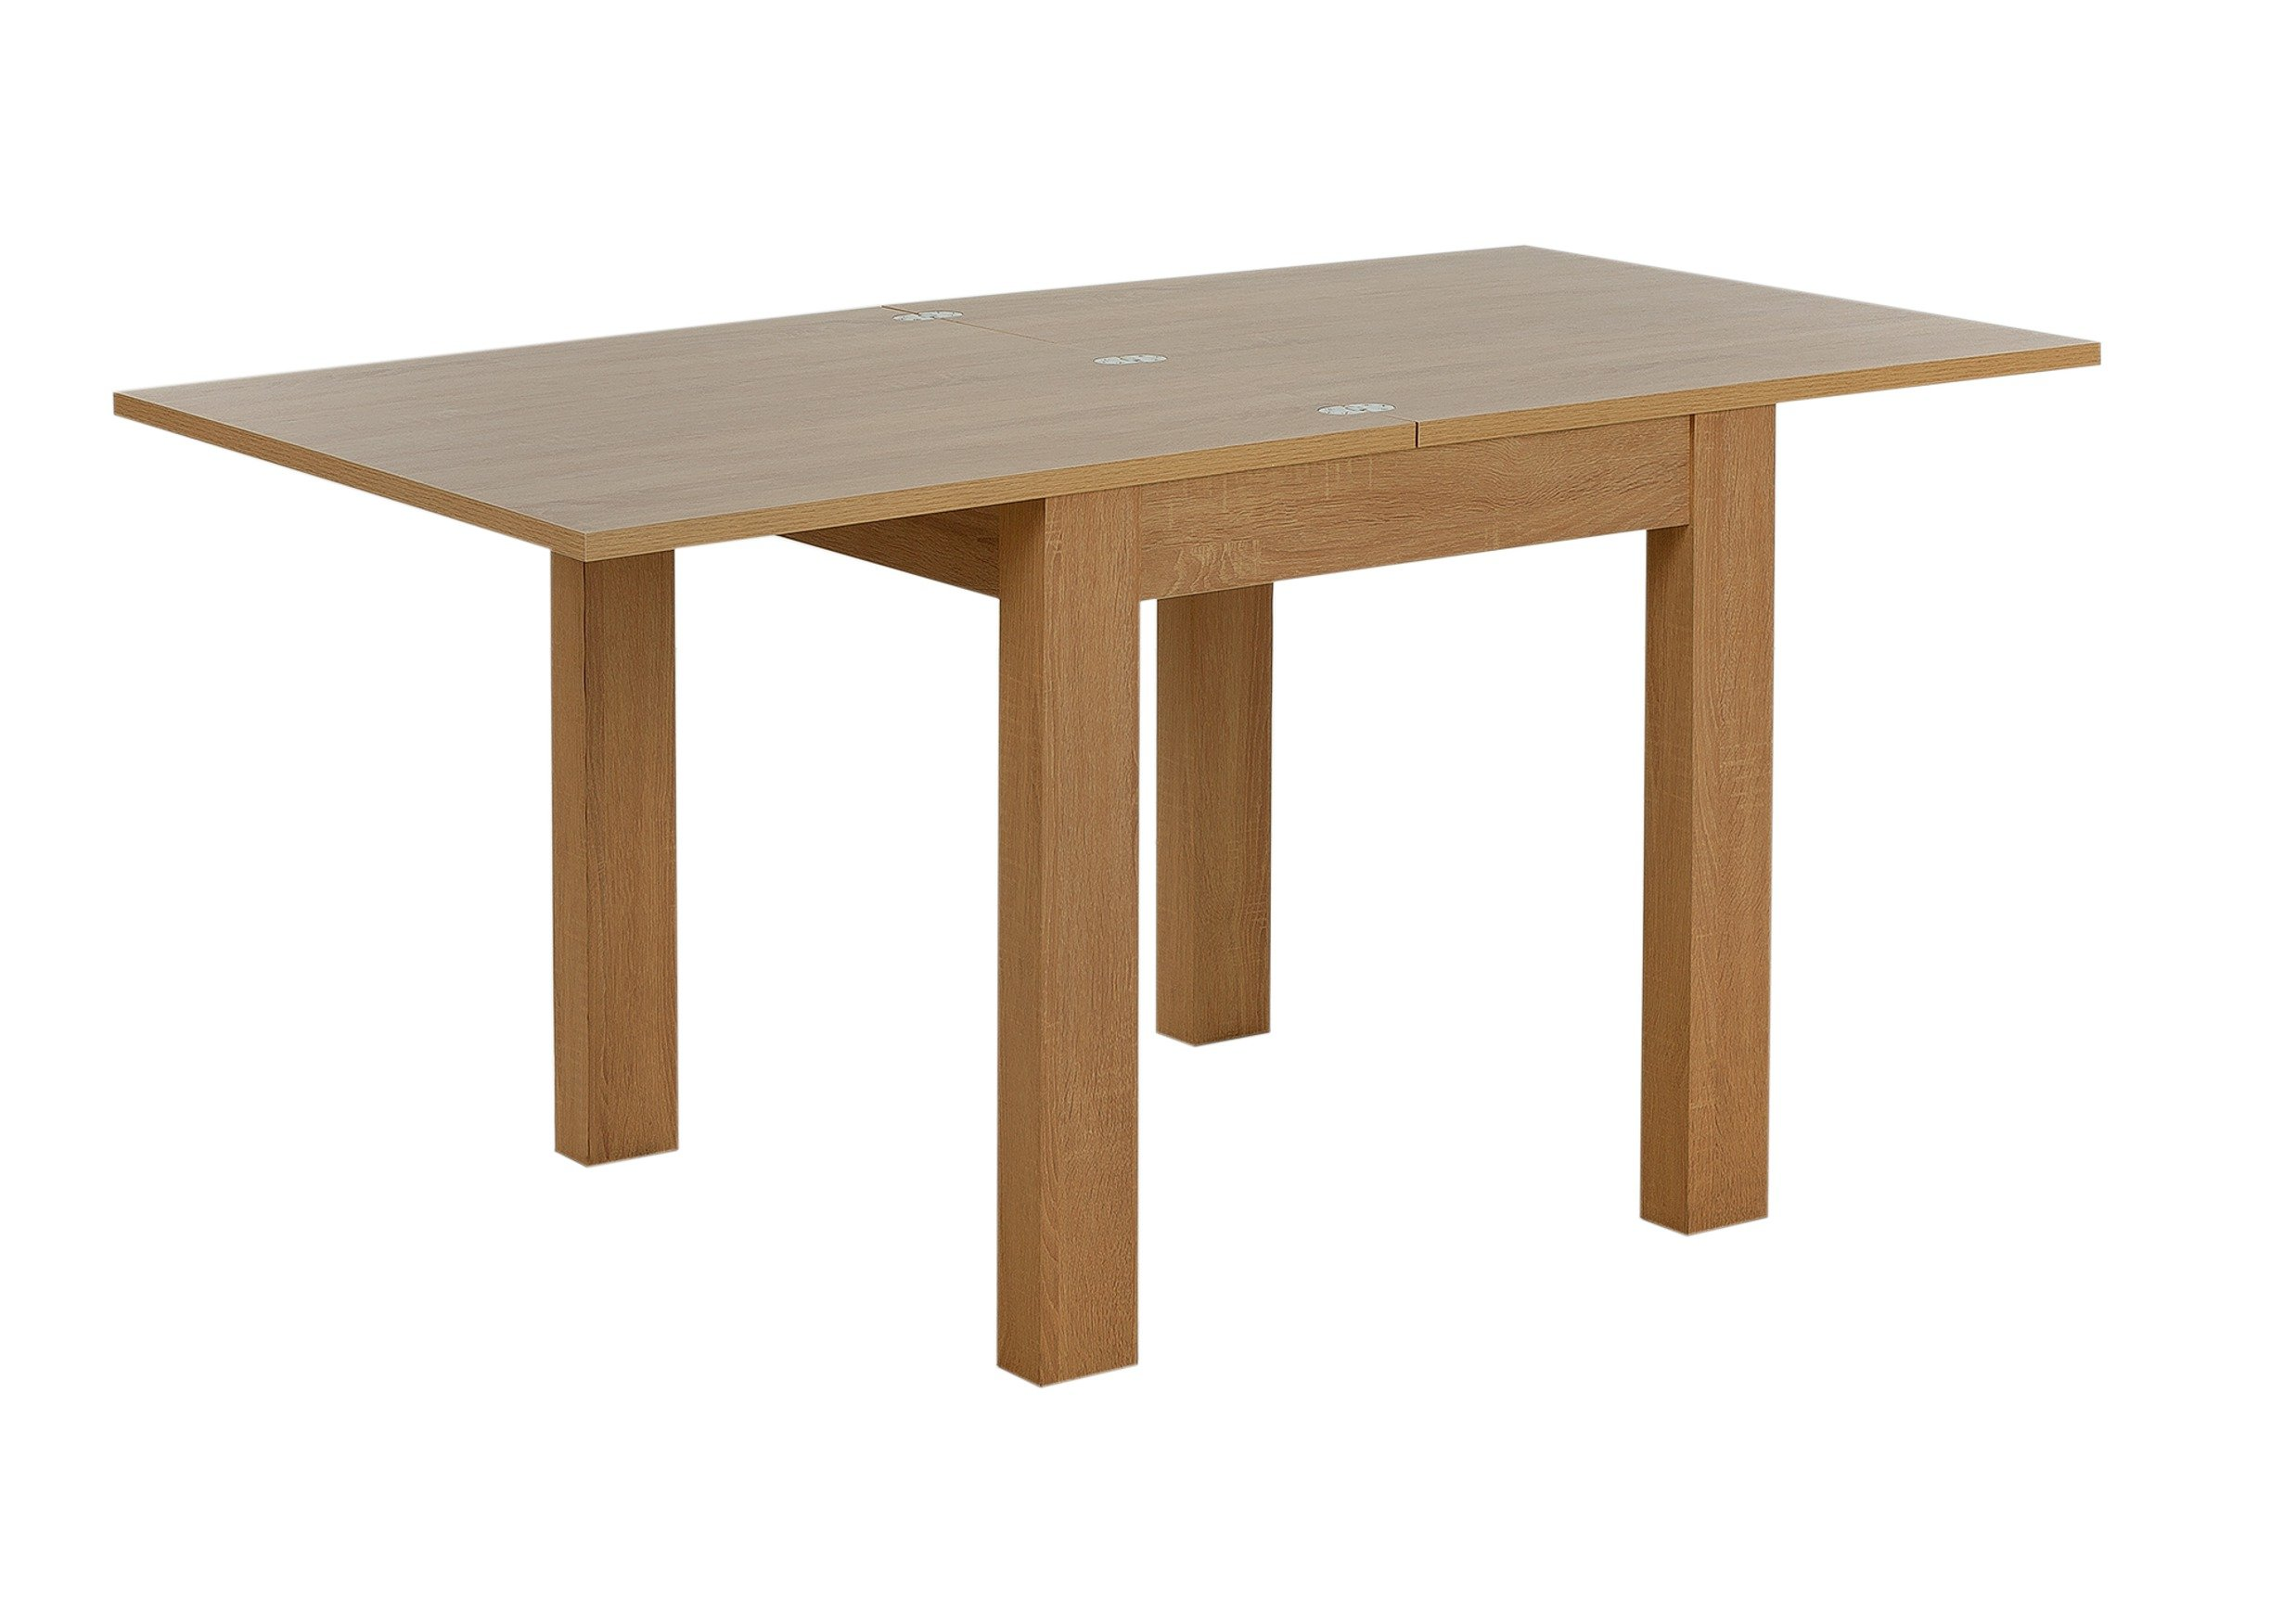 Image of Collection - Aberford Oak Effect - Dining Table